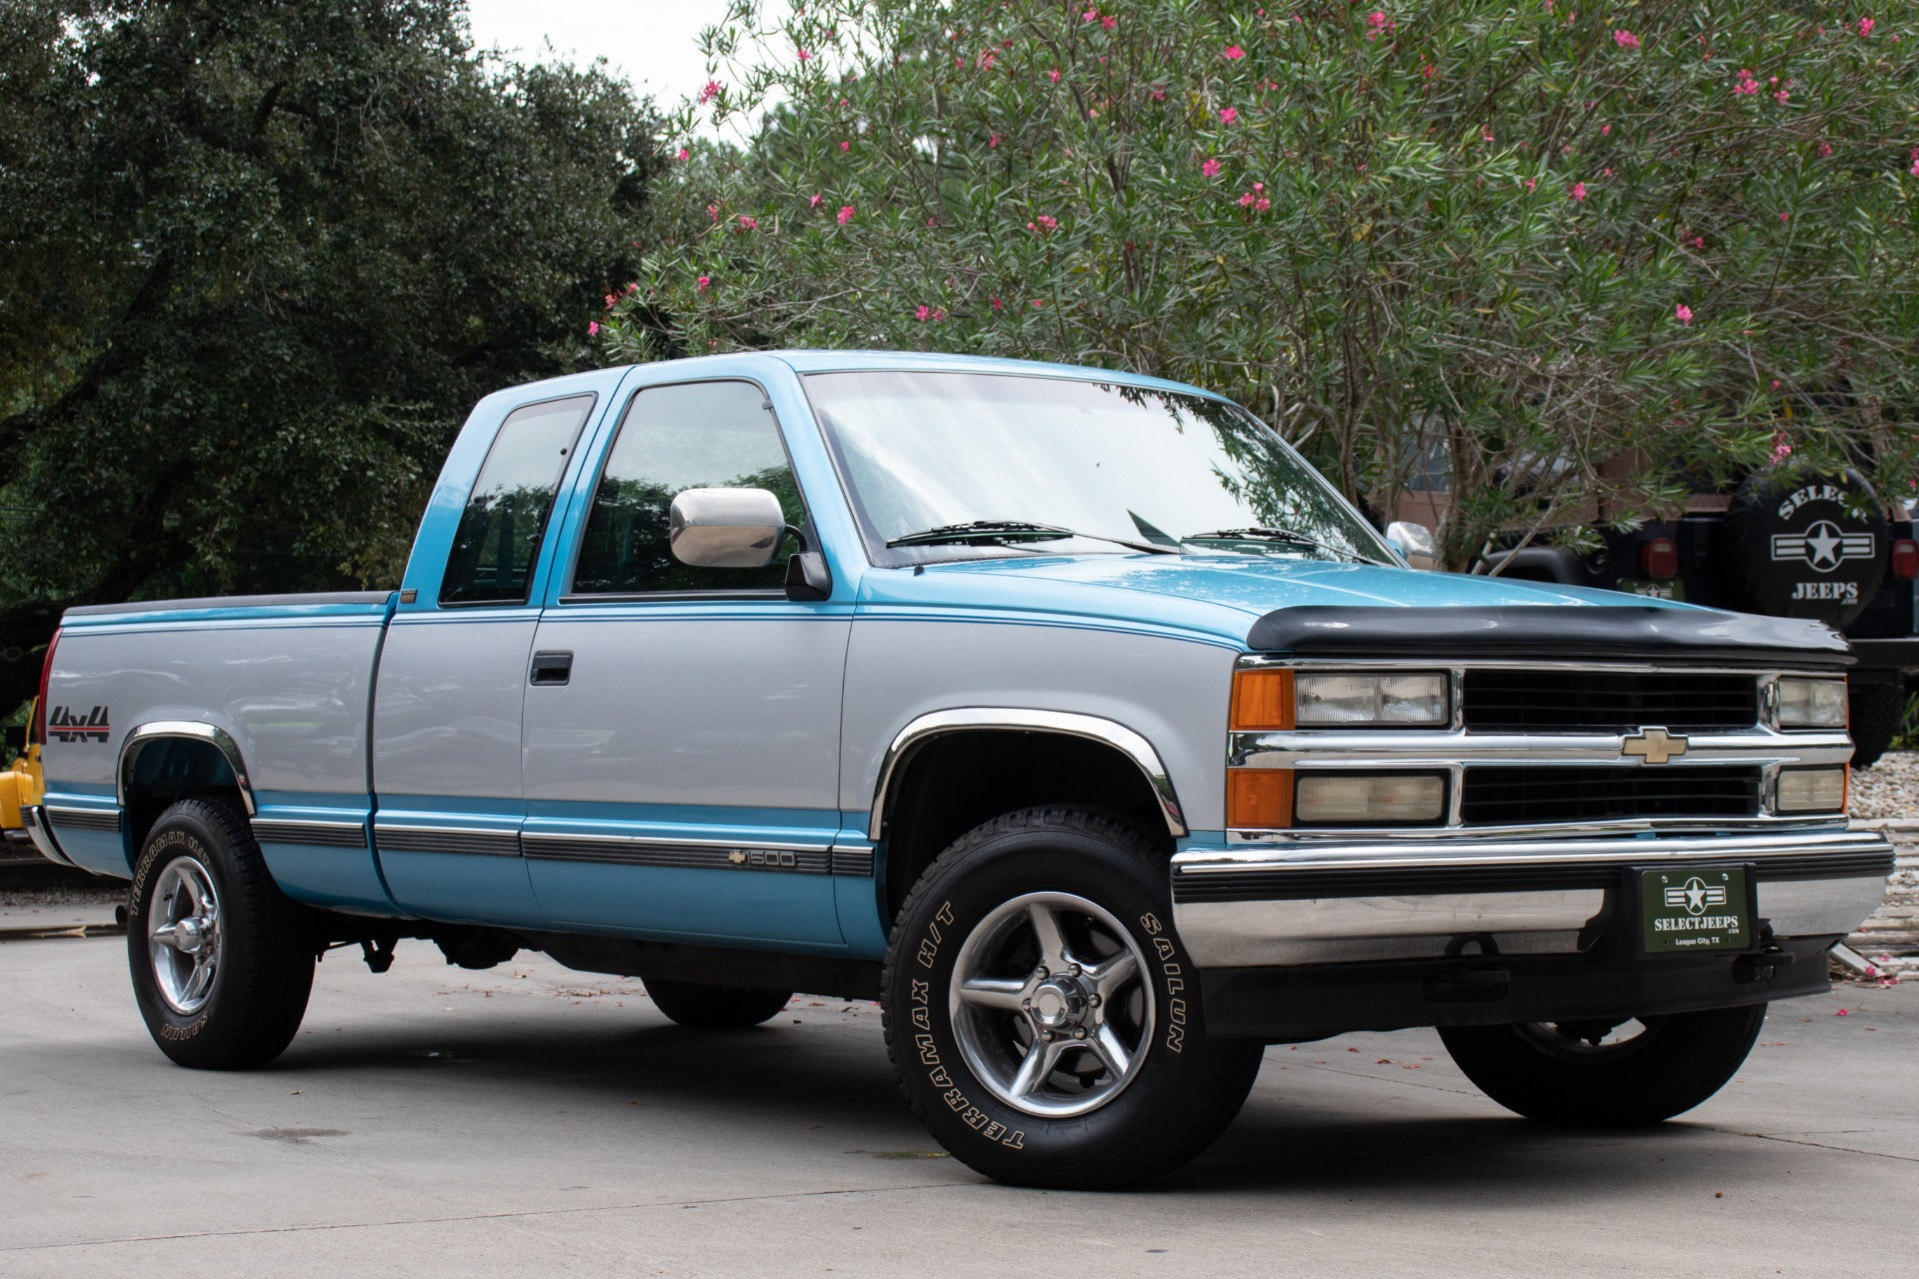 Used-1994-Chevrolet-C/K-1500-Series-K1500-Cheyenne